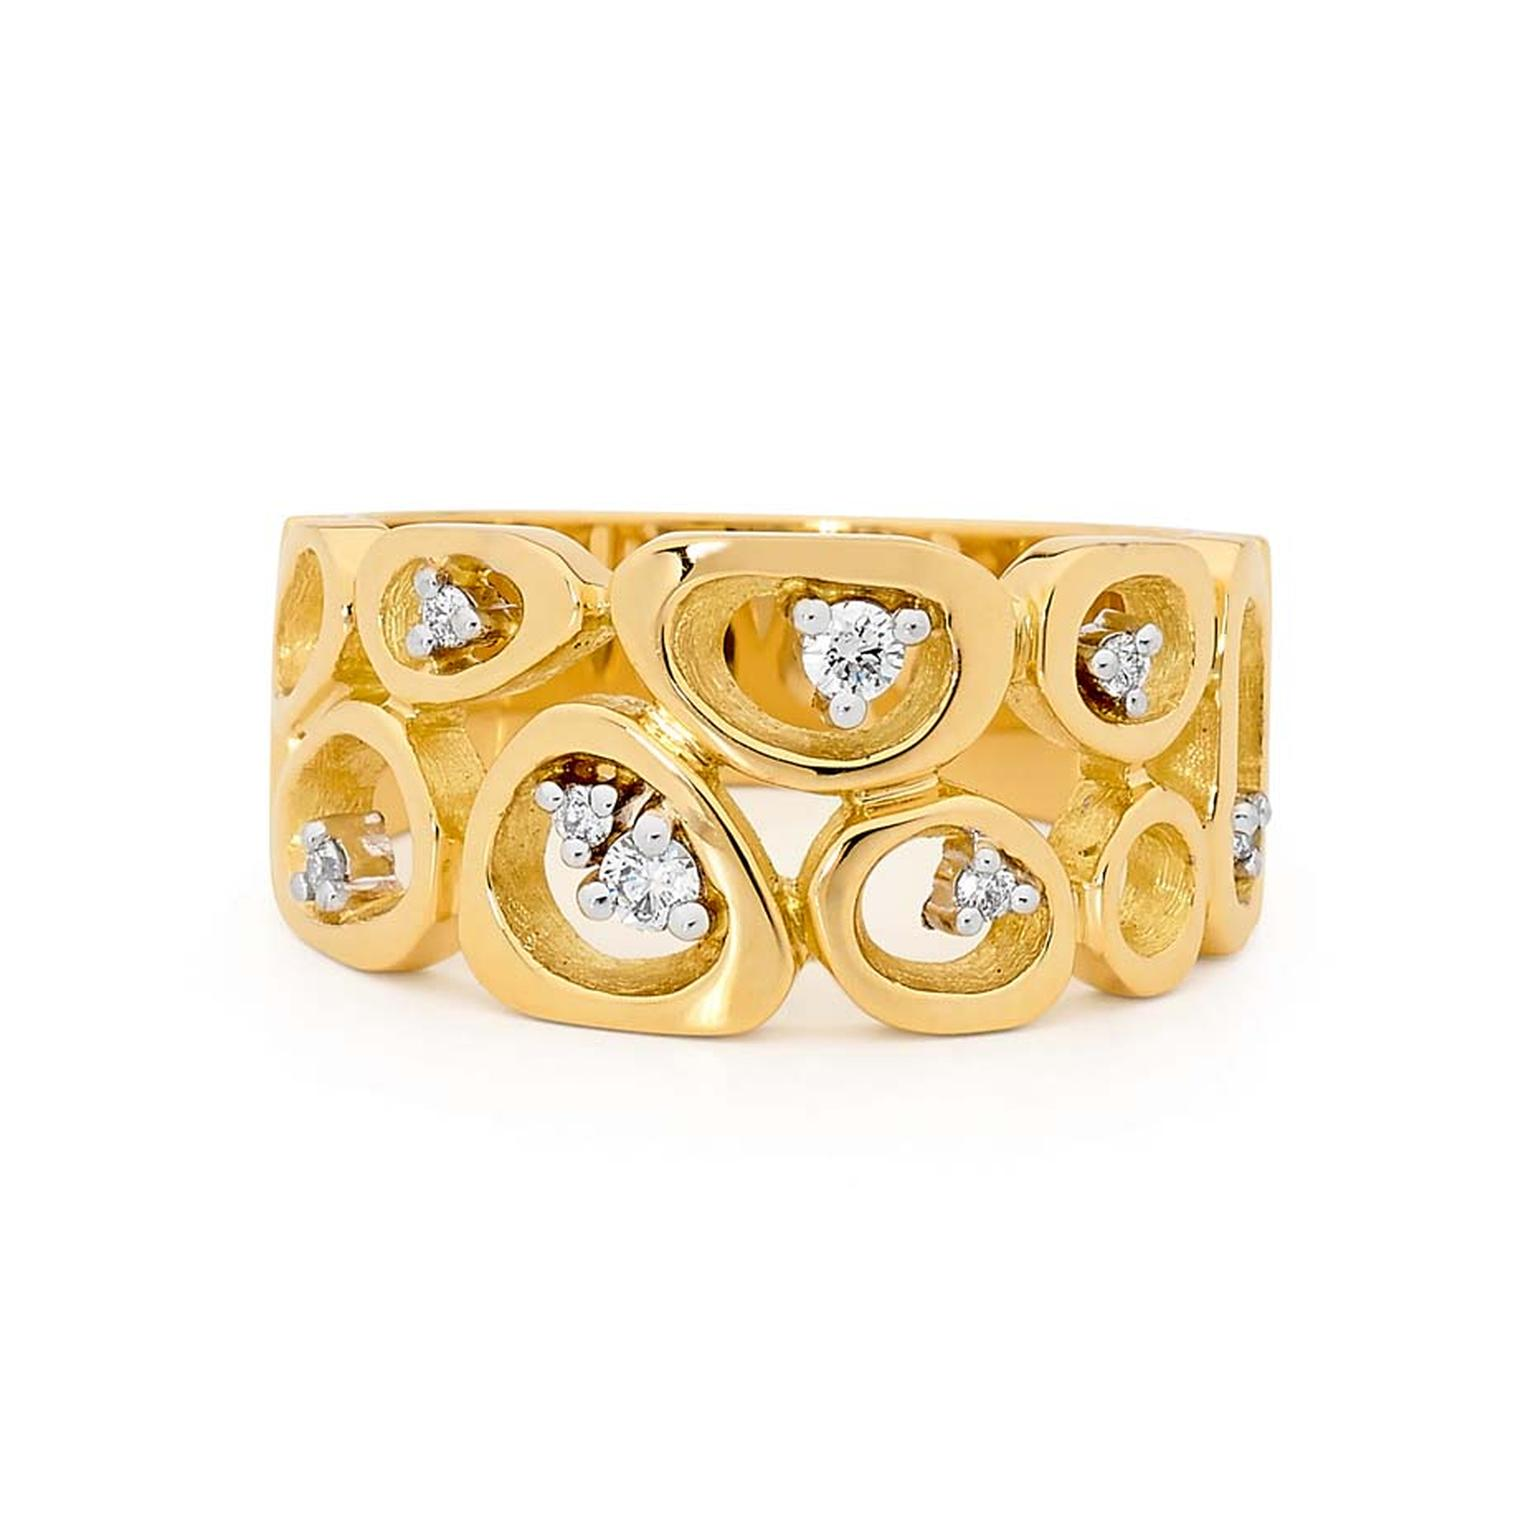 Linneys ring in yellow and white gold with diamonds.